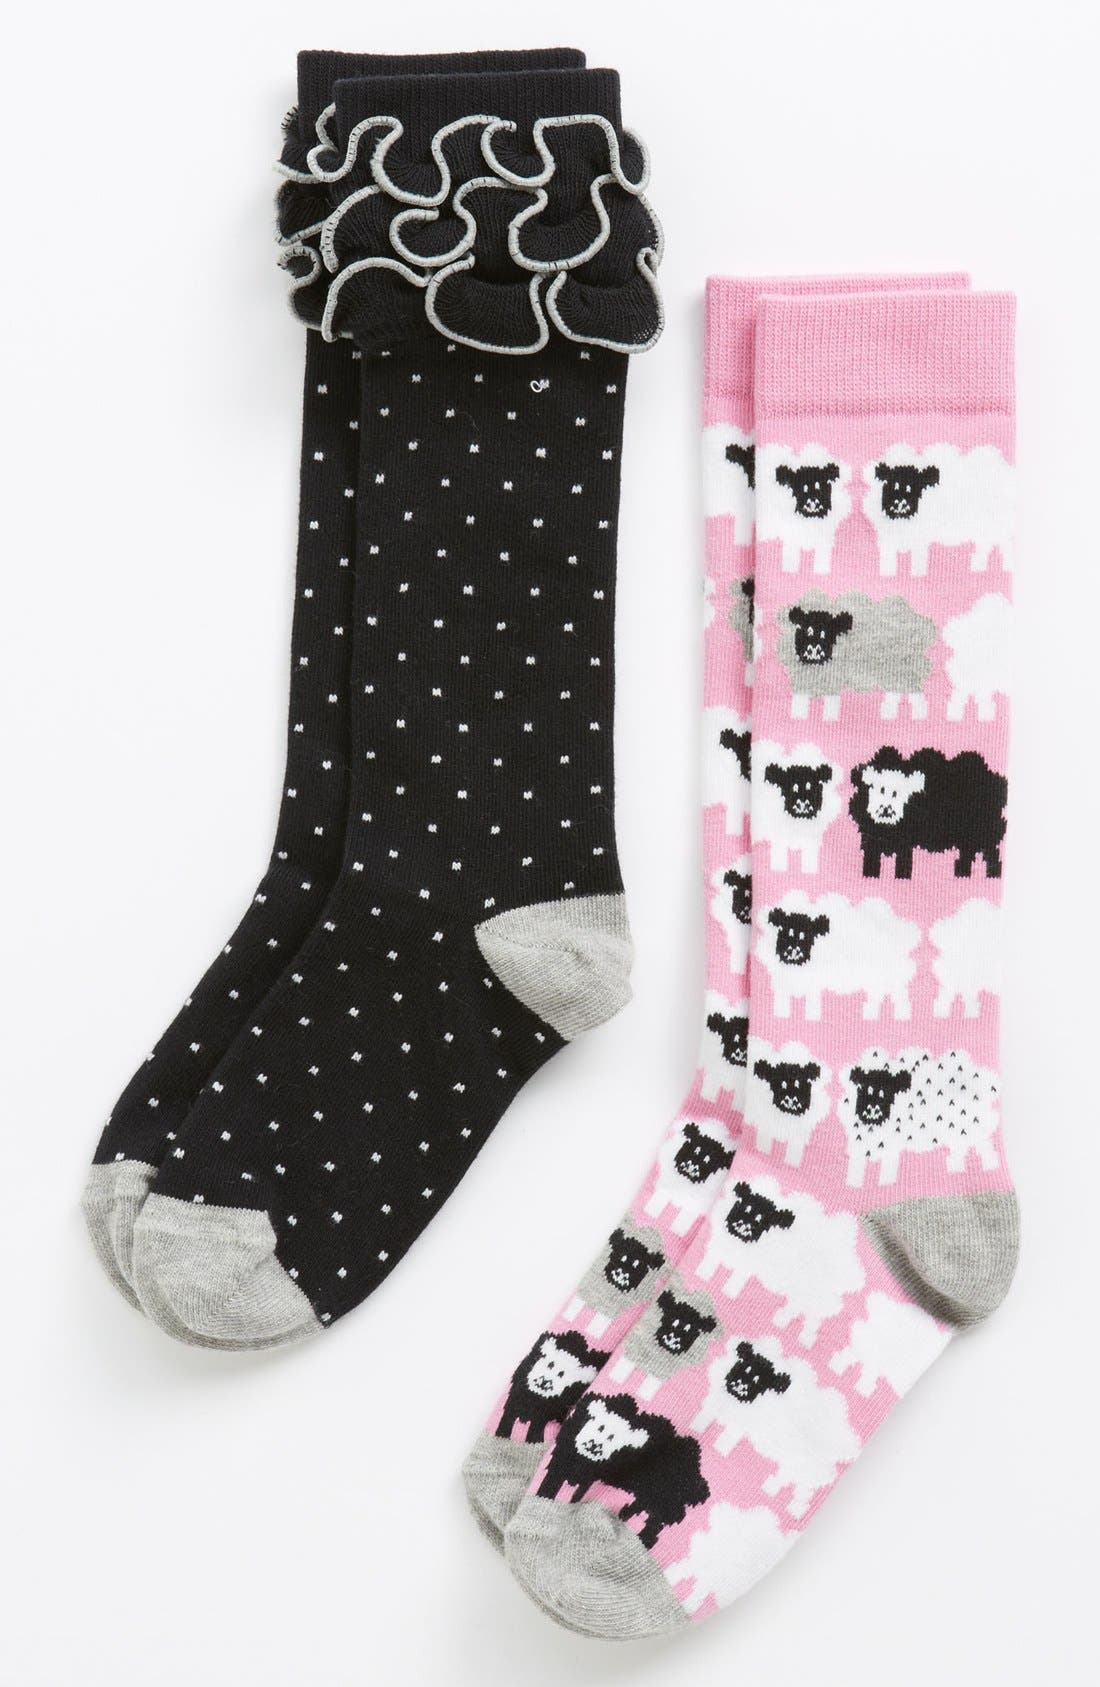 Alternate Image 1 Selected - Nordstrom 'Little Bo Sheep' Knee High Socks (2-Pack) (Toddler, Little Girls & Big Girls)